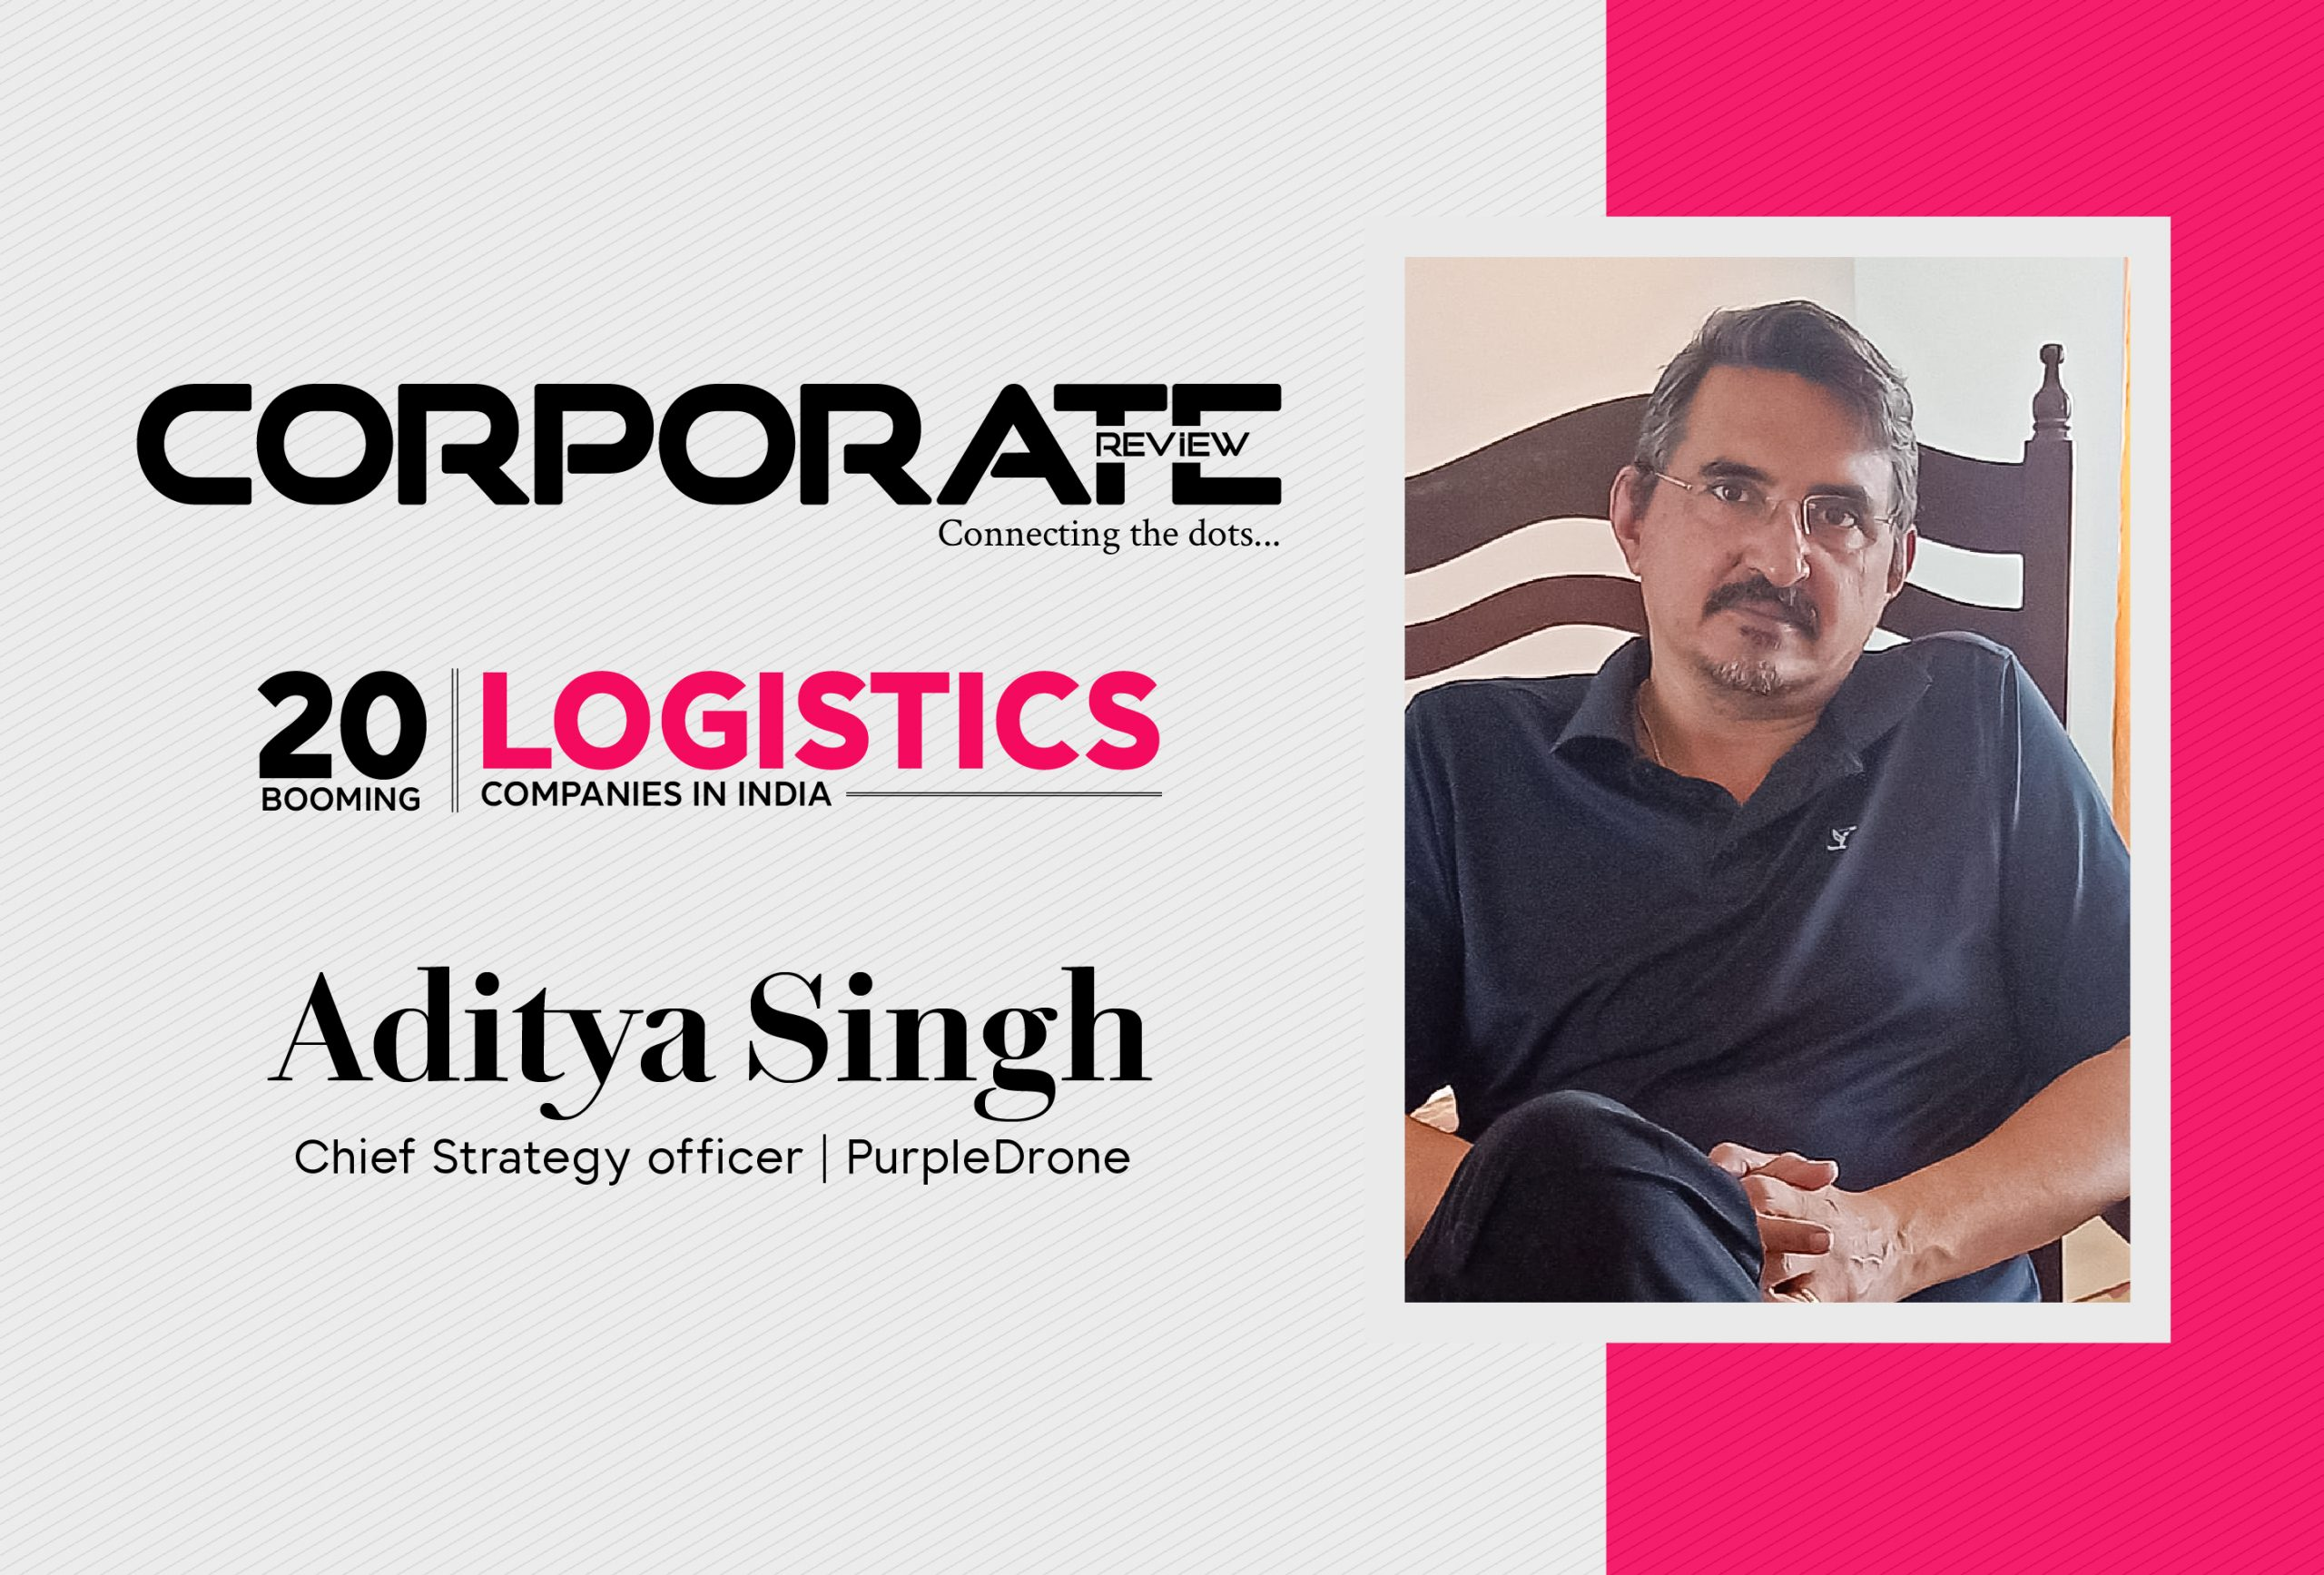 PurpleDrone: Accelerating India's logistics & warehousing revolution with the influx of innovative solutions